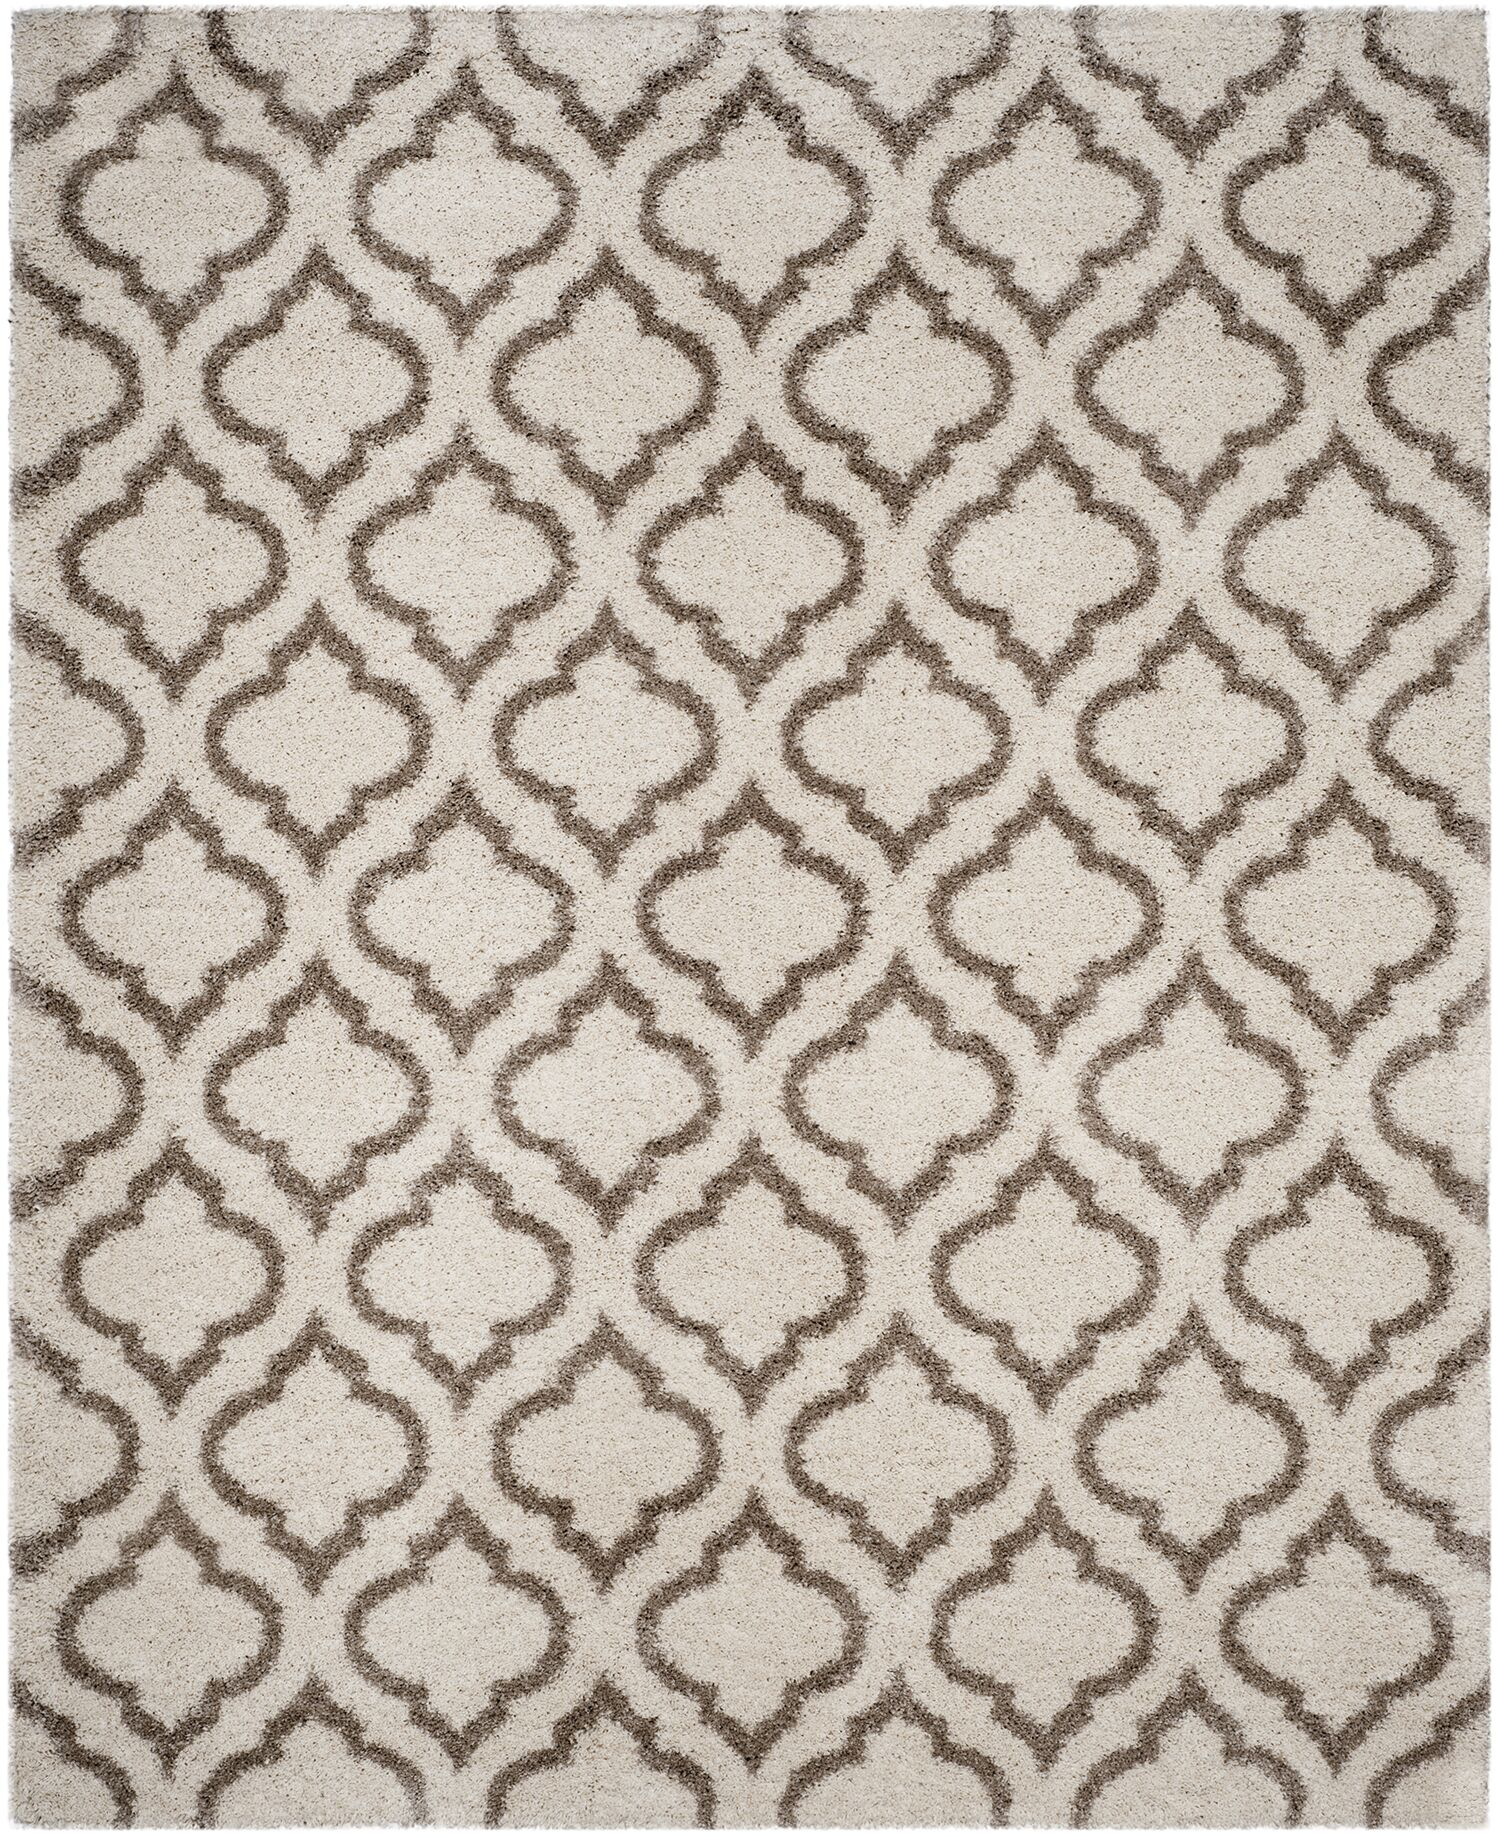 Melvin Brown/Beige Area Rug Rug Size: Rectangle 8' x 10'